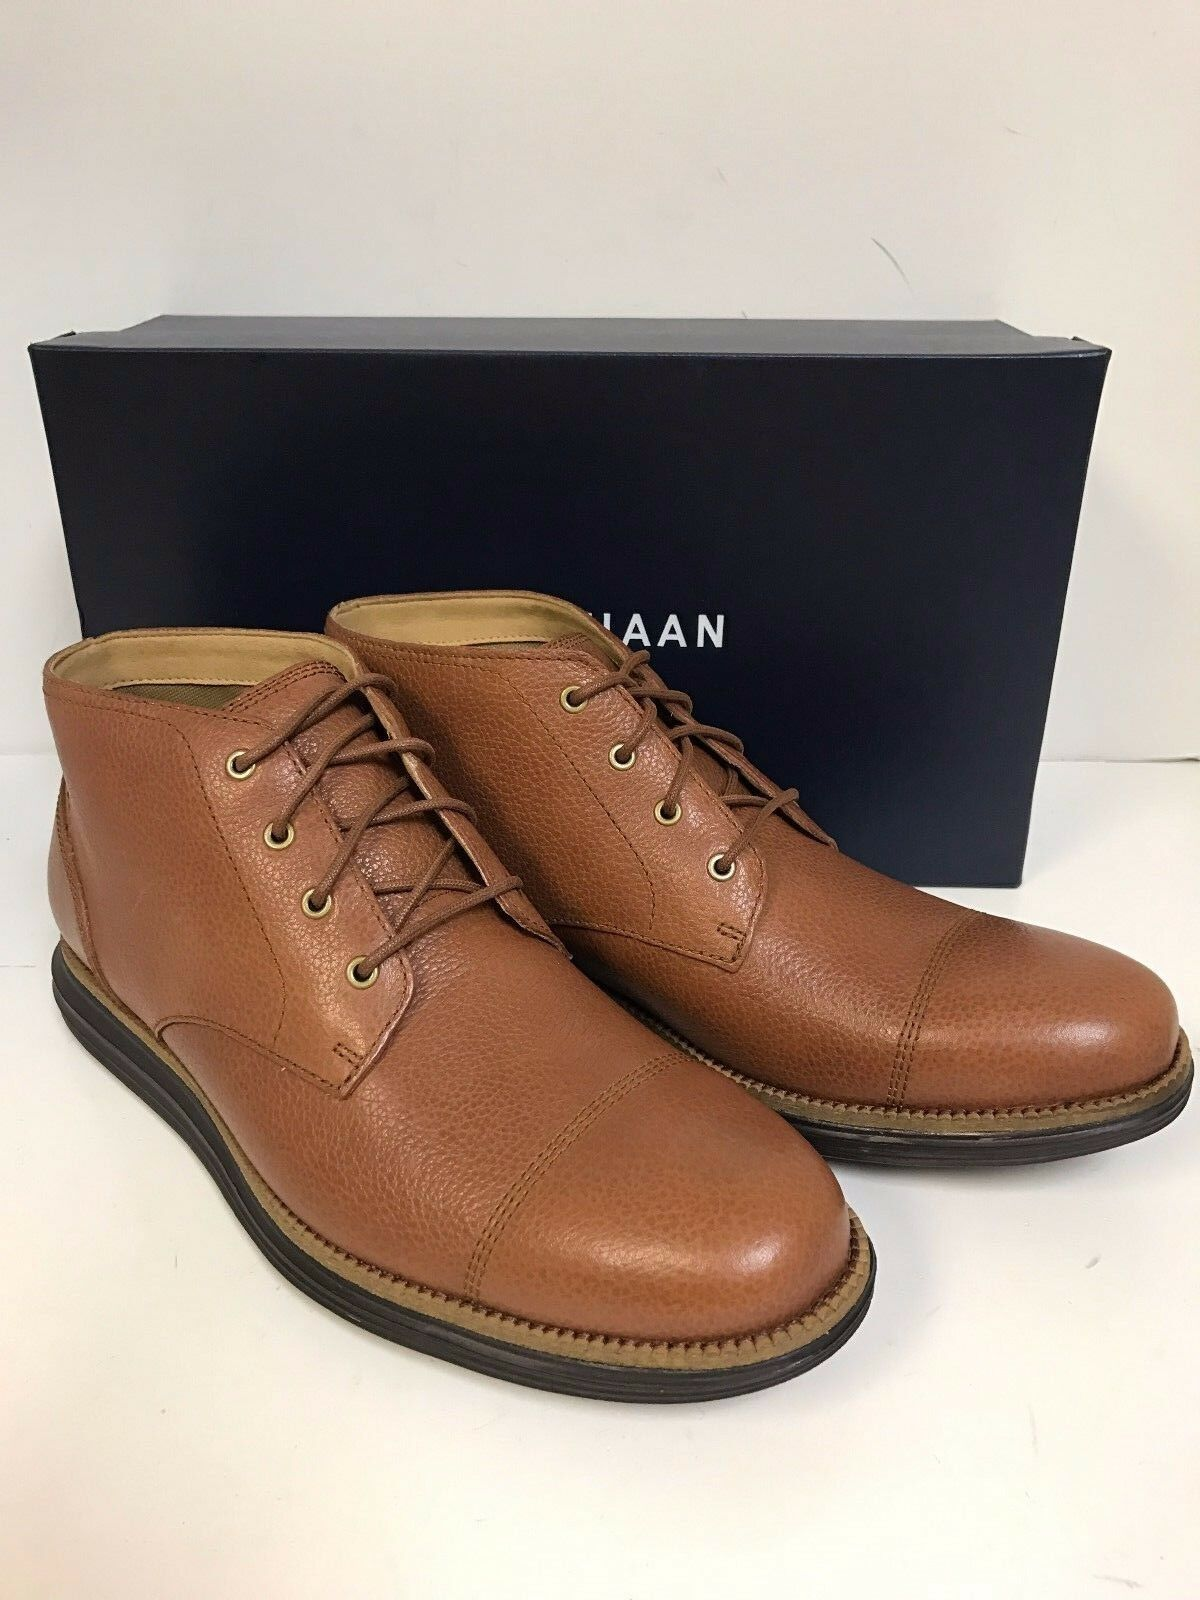 fcf864c6bd303 Cole Haan Original Grand Chukka II Leather BOOTS Size 8.5 for sale ...